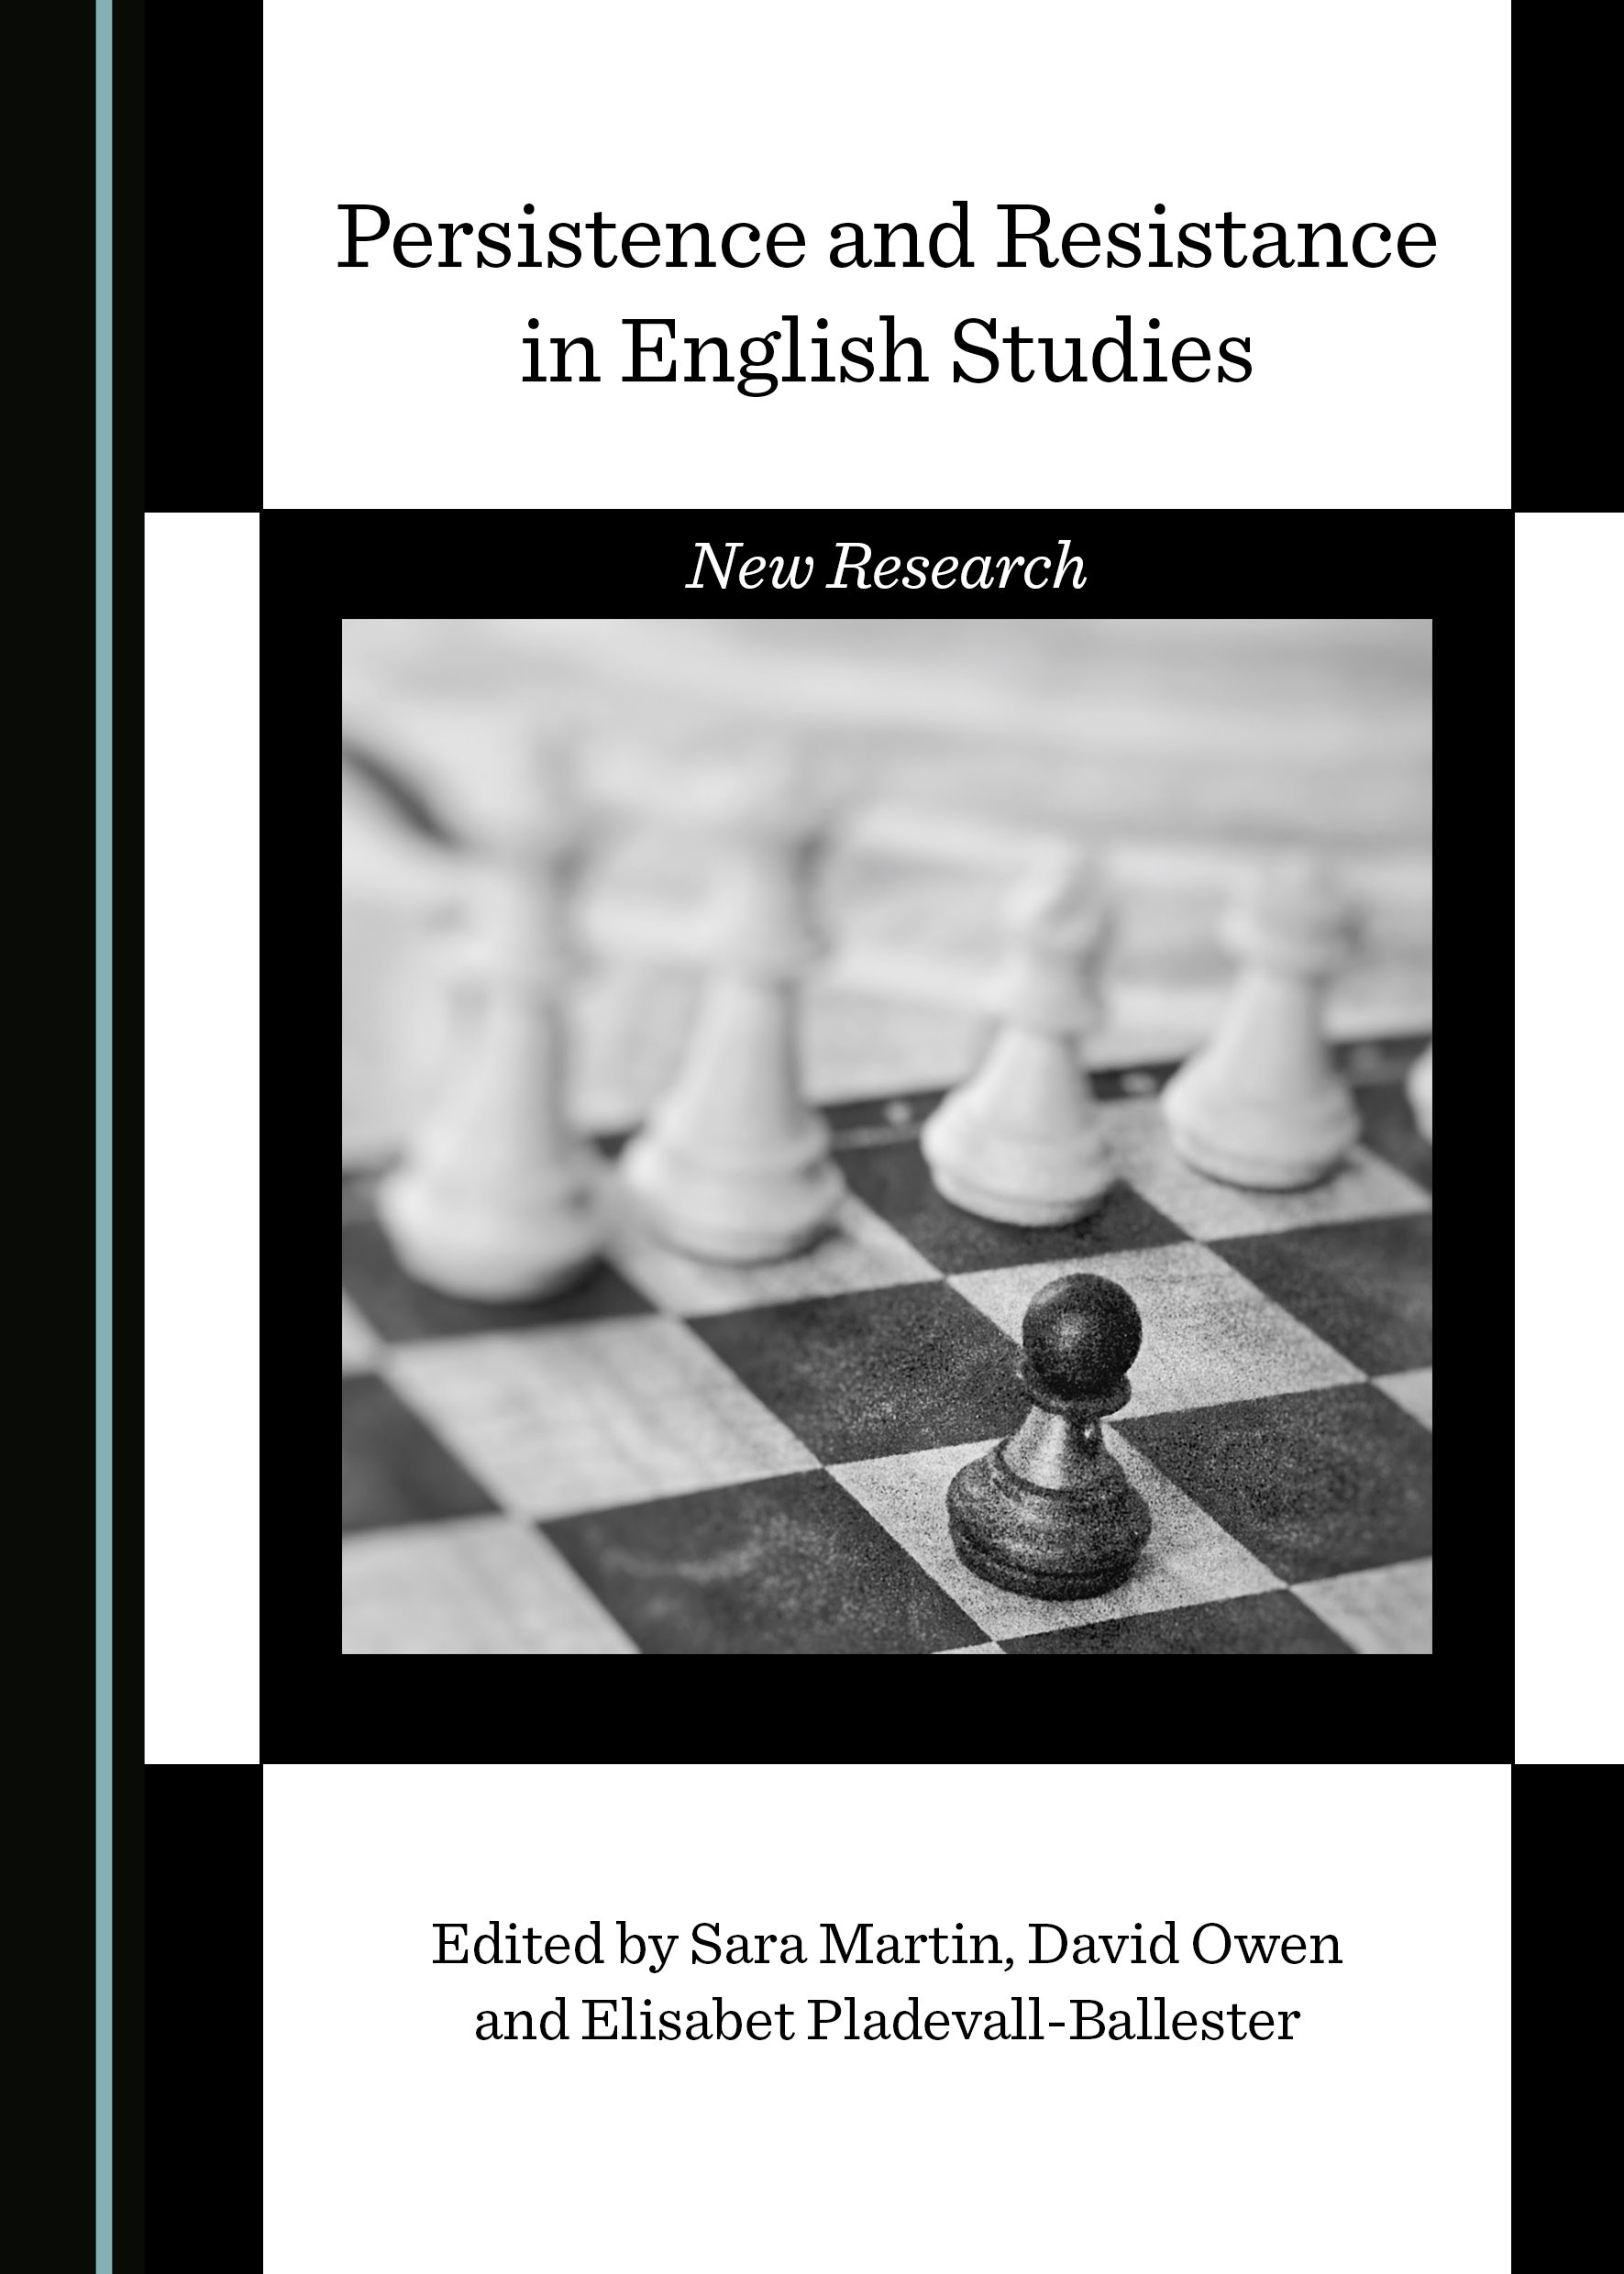 Persistence and Resistance in English Studies: New Research